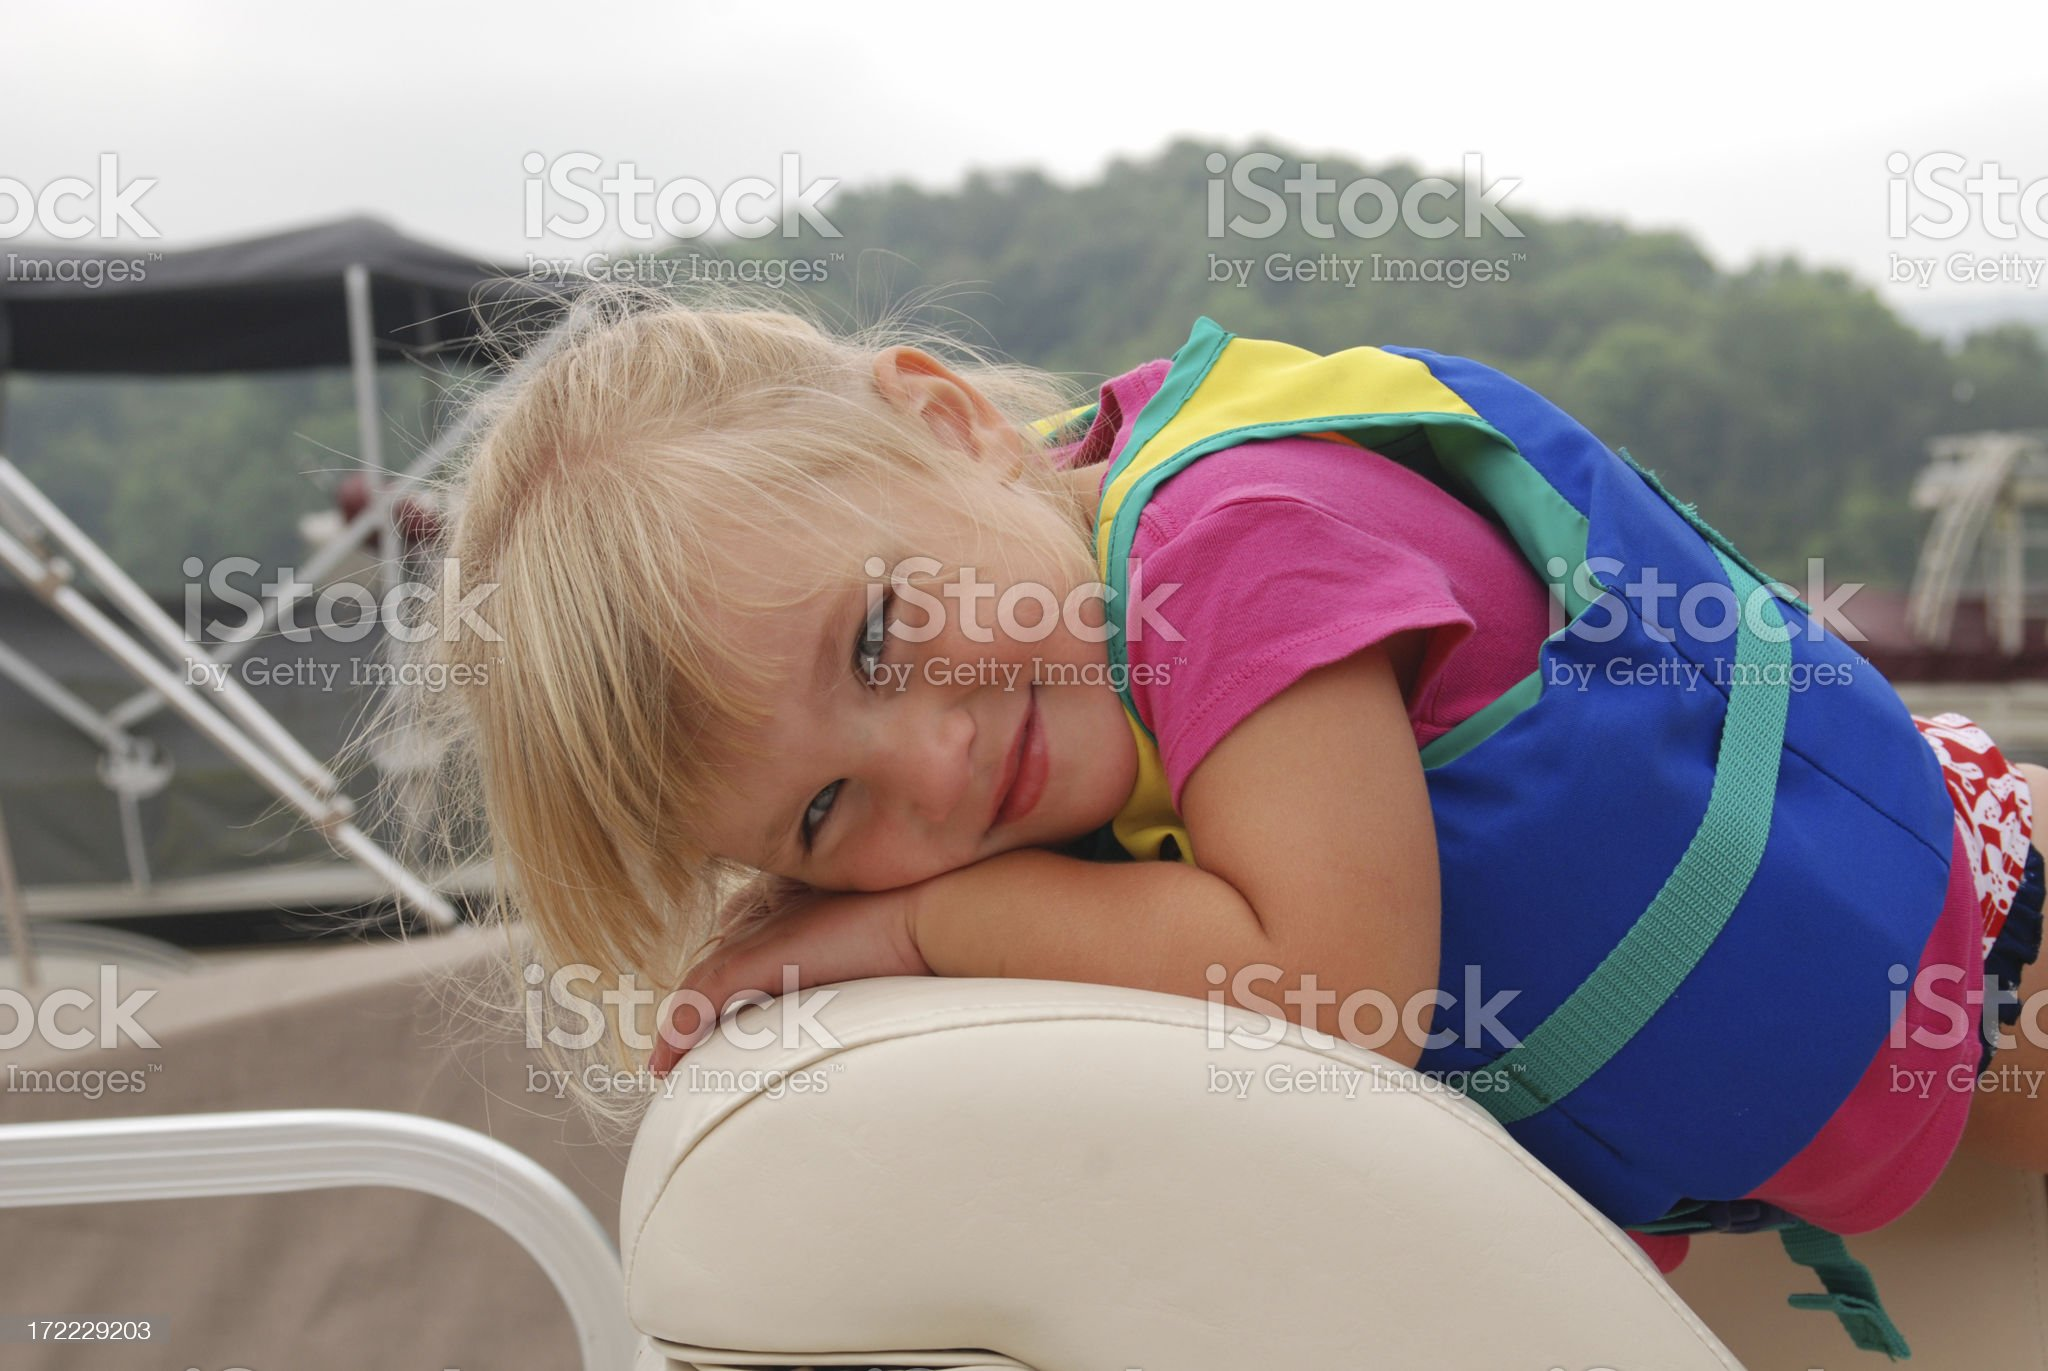 Blonde Haired Child on a Boat royalty-free stock photo